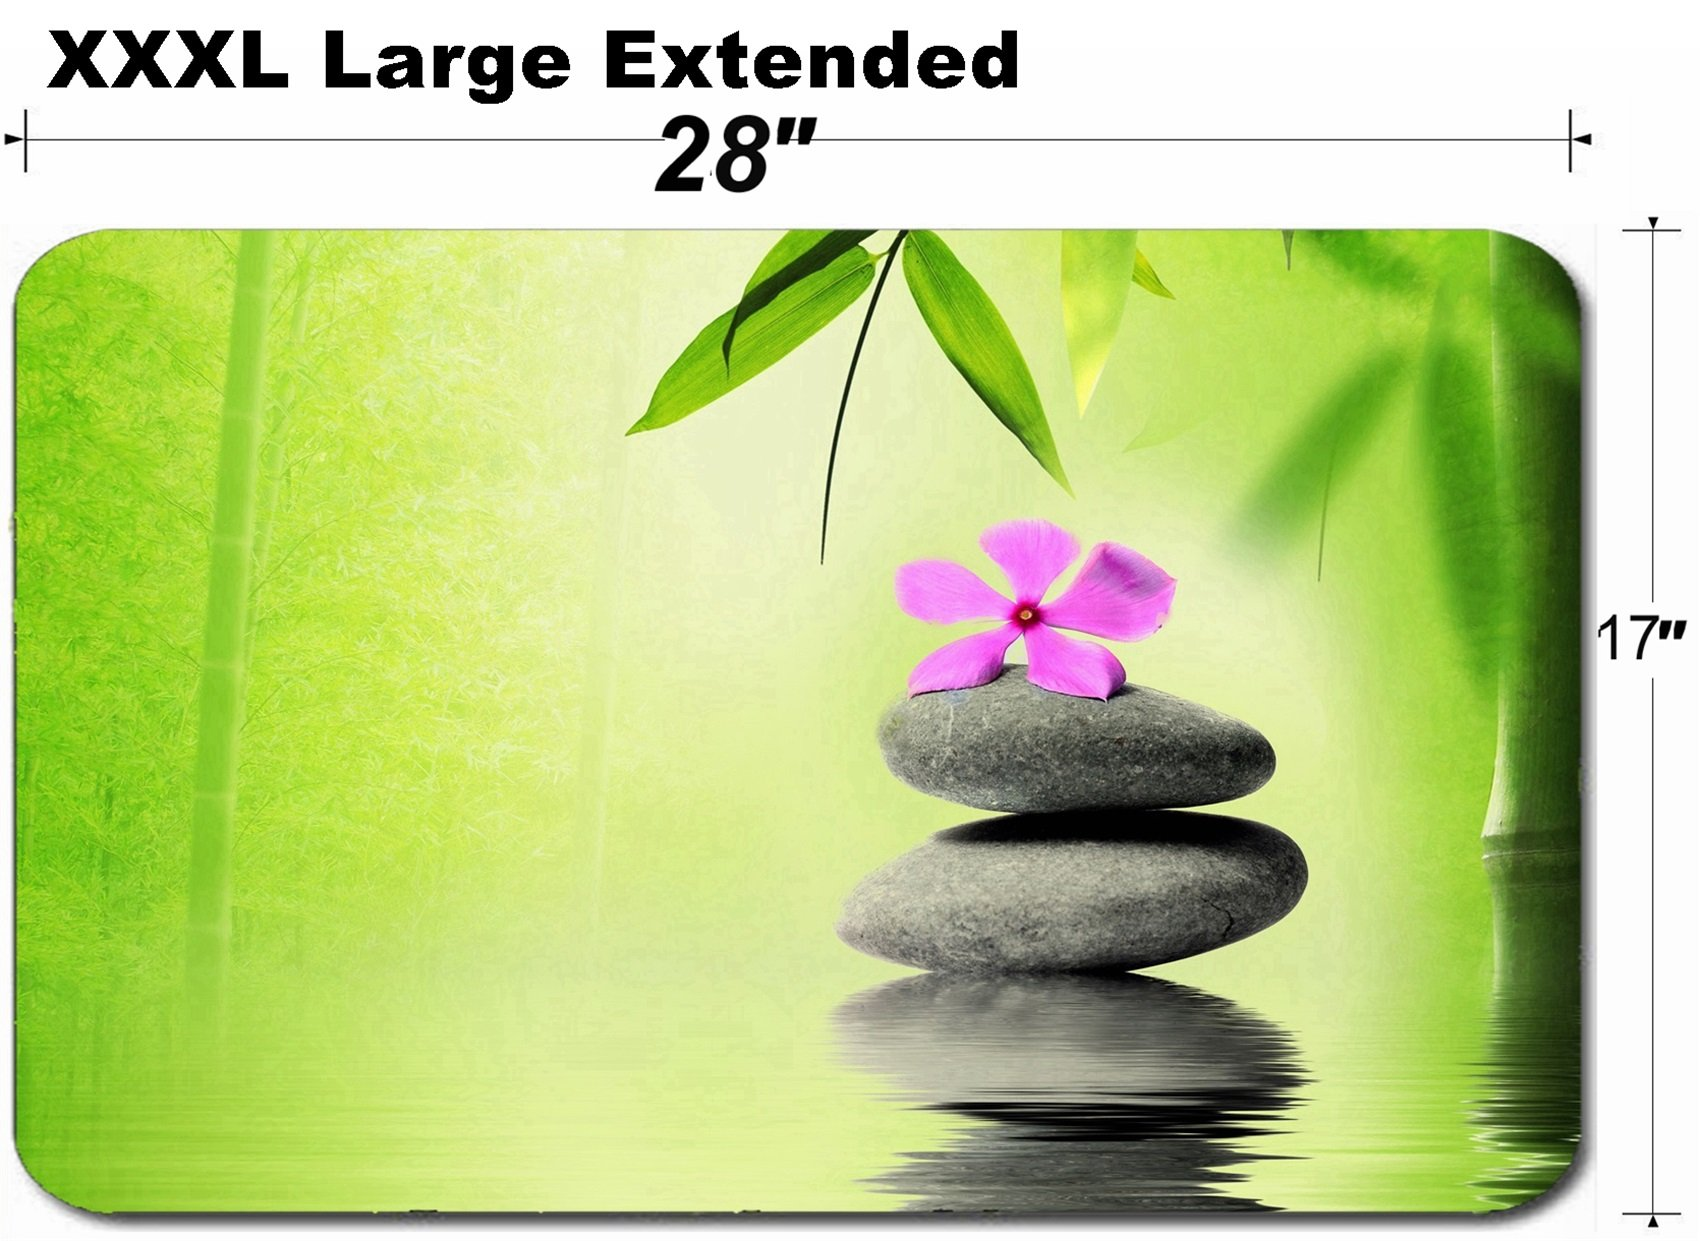 MSD Large Table Mat Non-Slip Natural Rubber Desk Pads Image 20152514 Zen Stone with Flower in Spa Concept